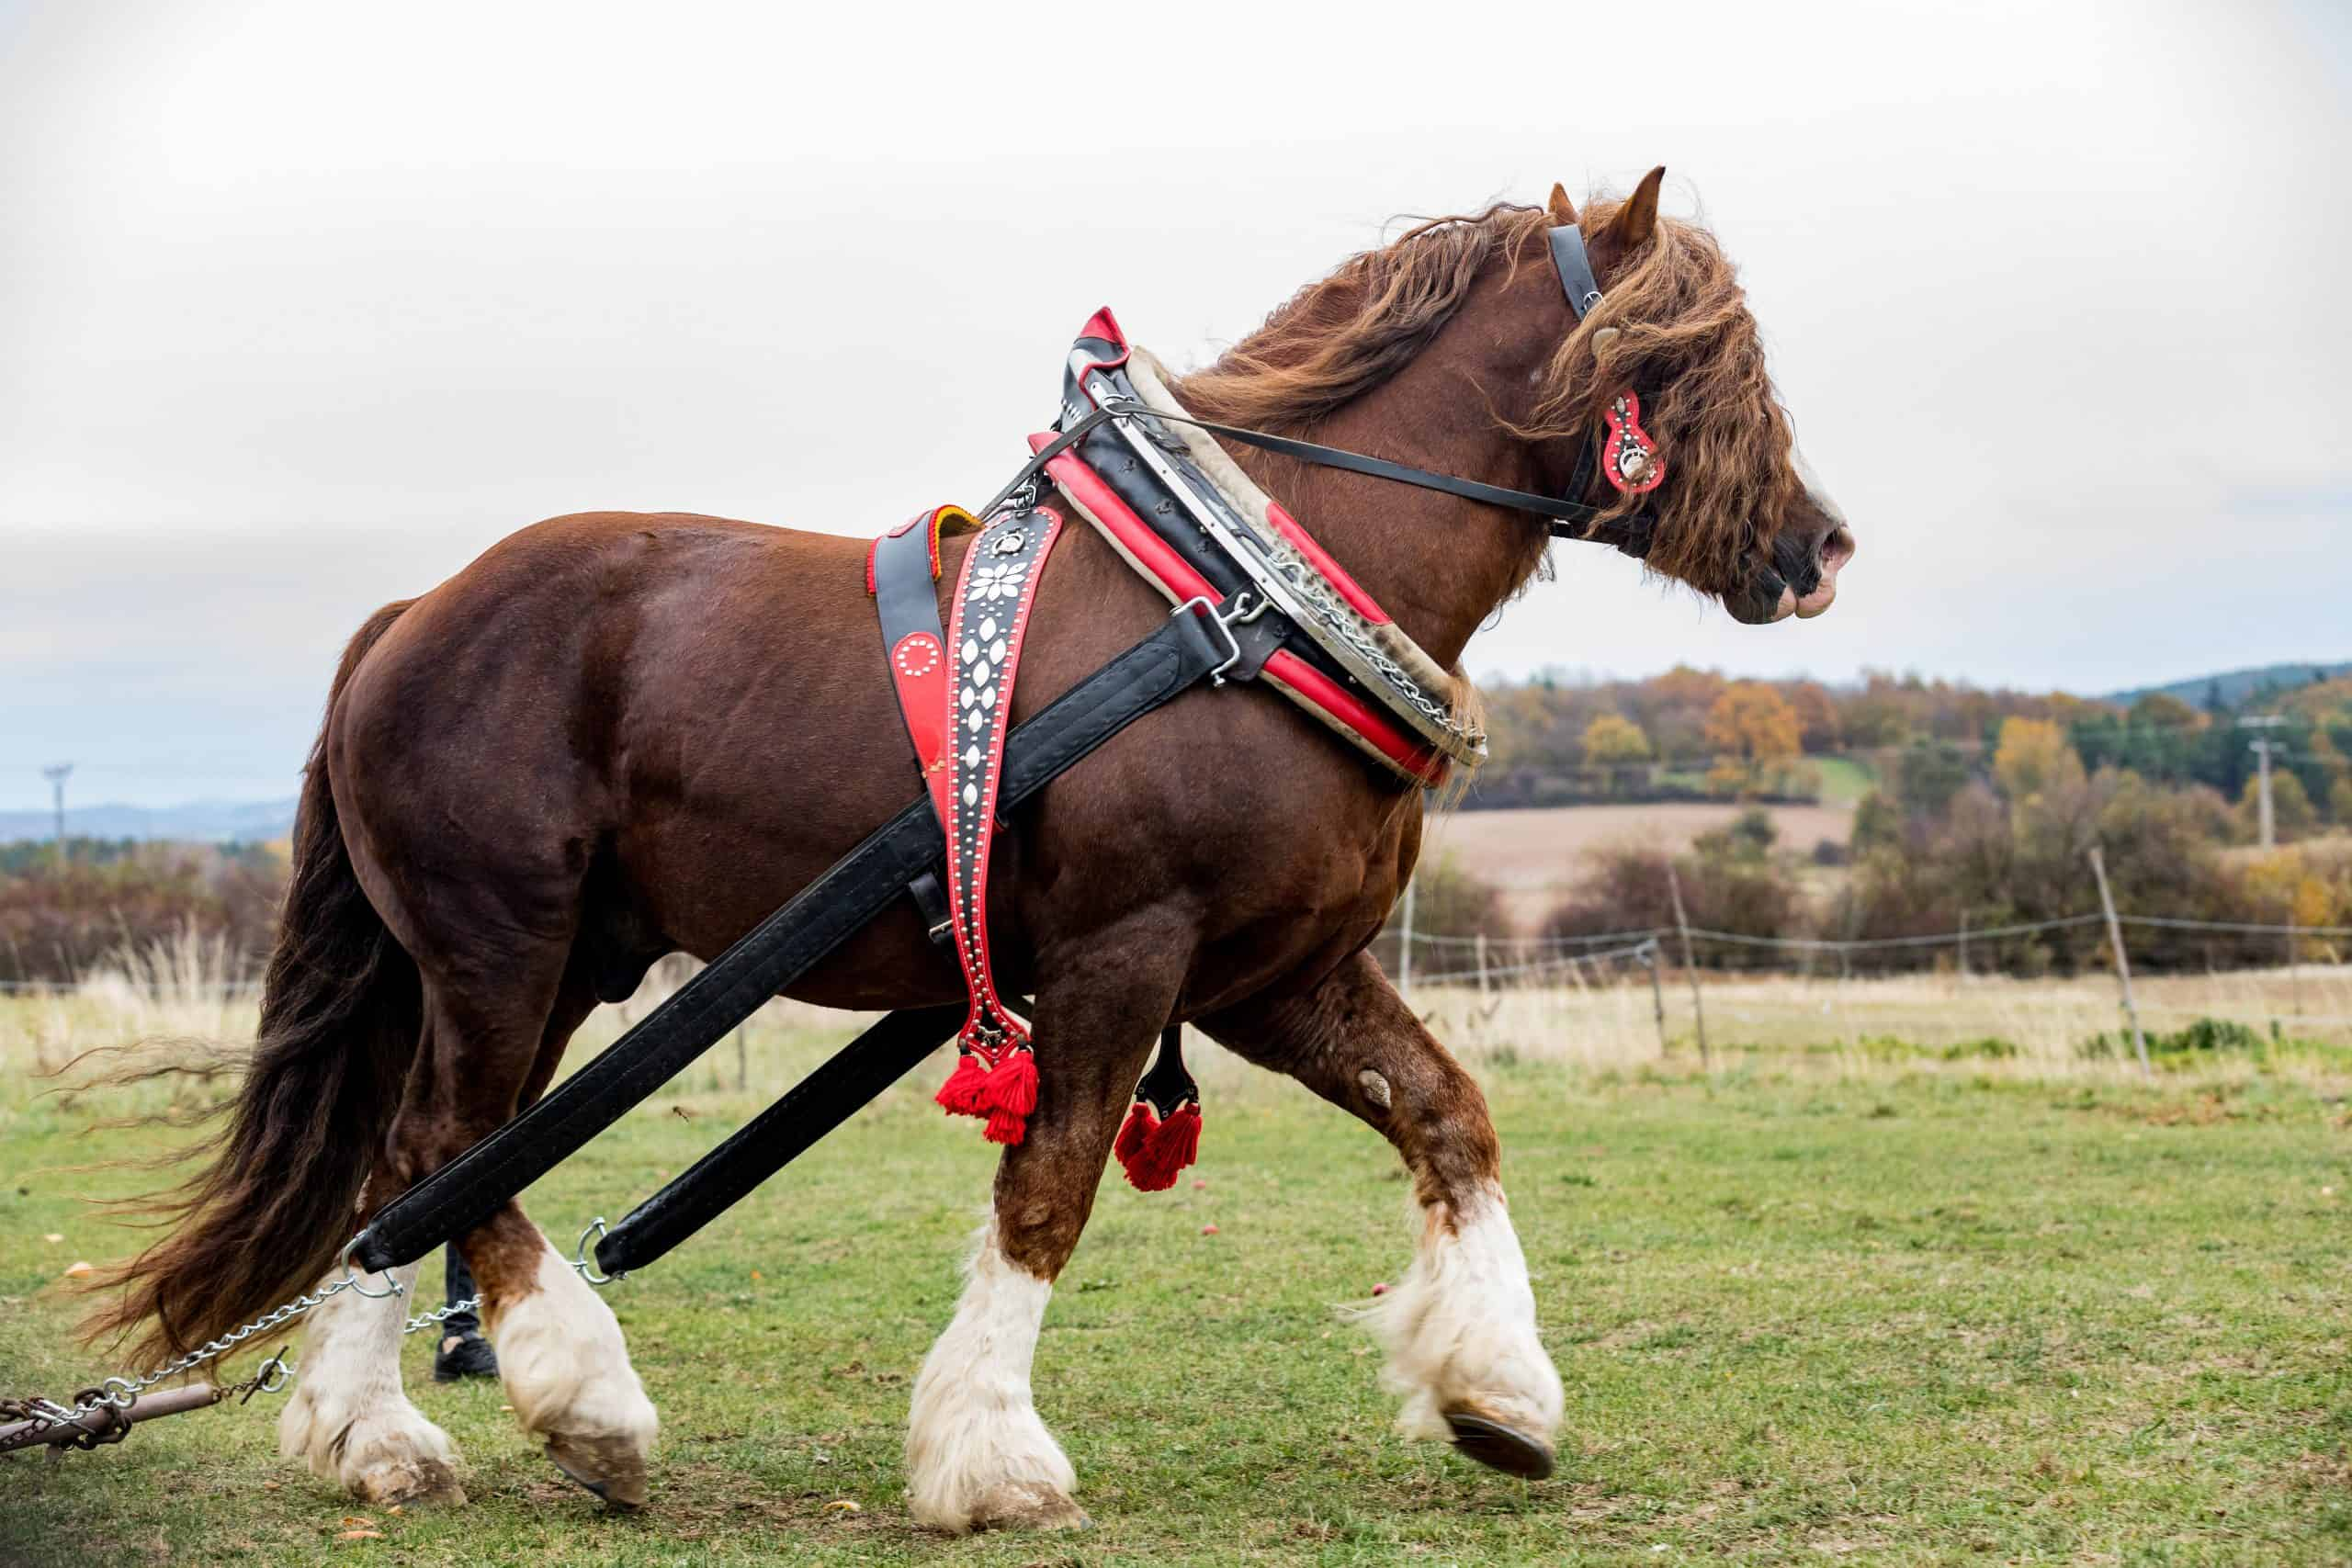 Biggest Horse Breeds in the World